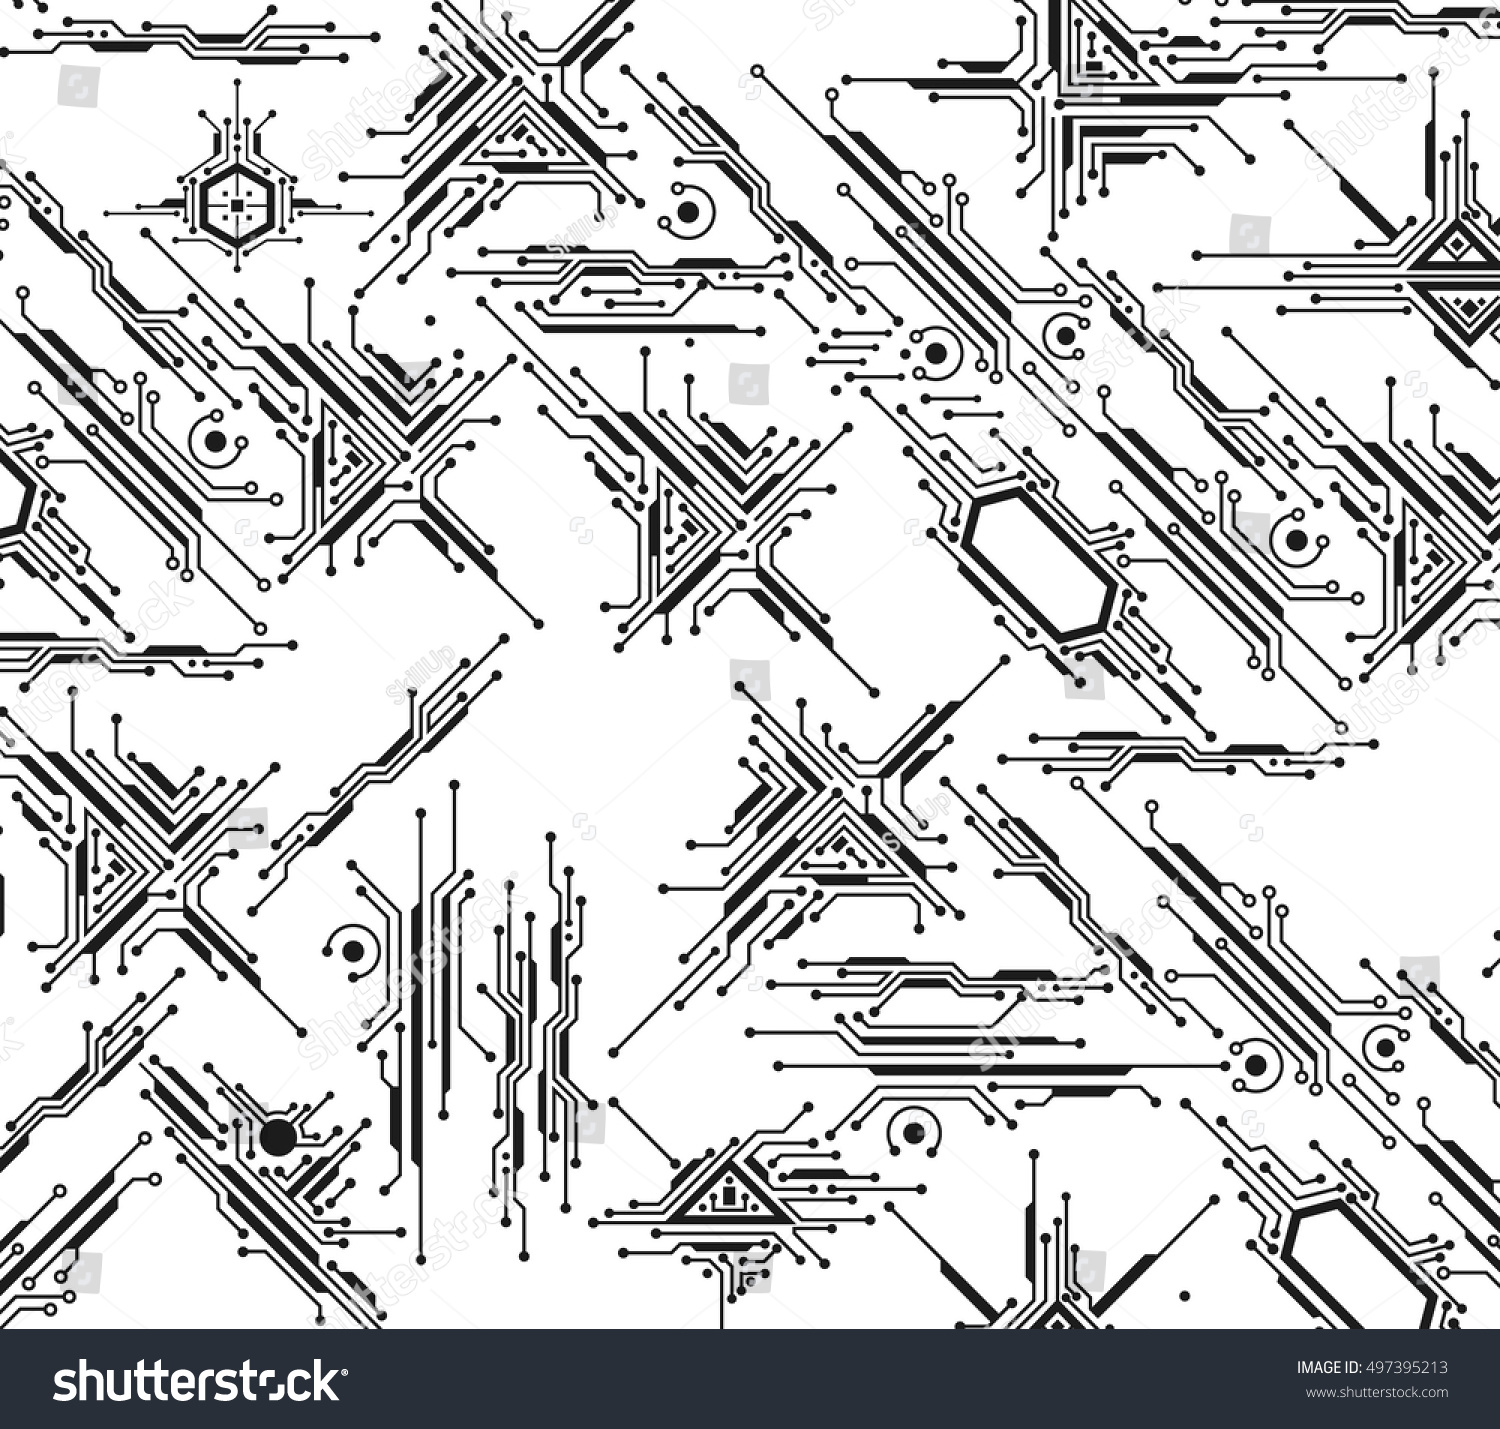 Enchanting Pcb Blueprint Wallpaper Composition - Everything You Need ...